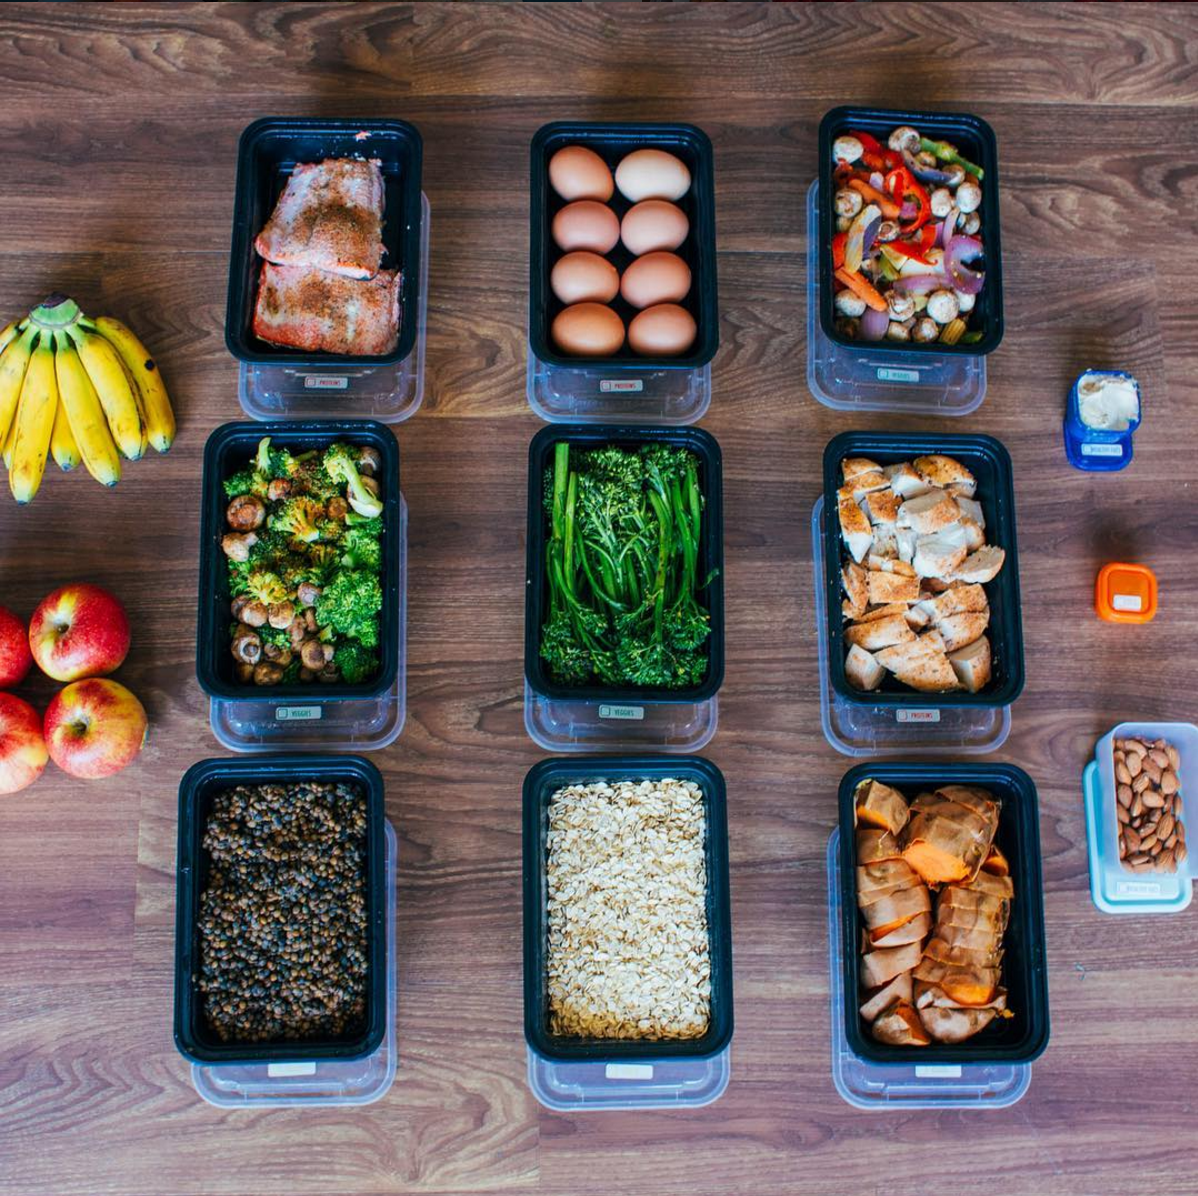 Buffet-style meal prep by meowmeix